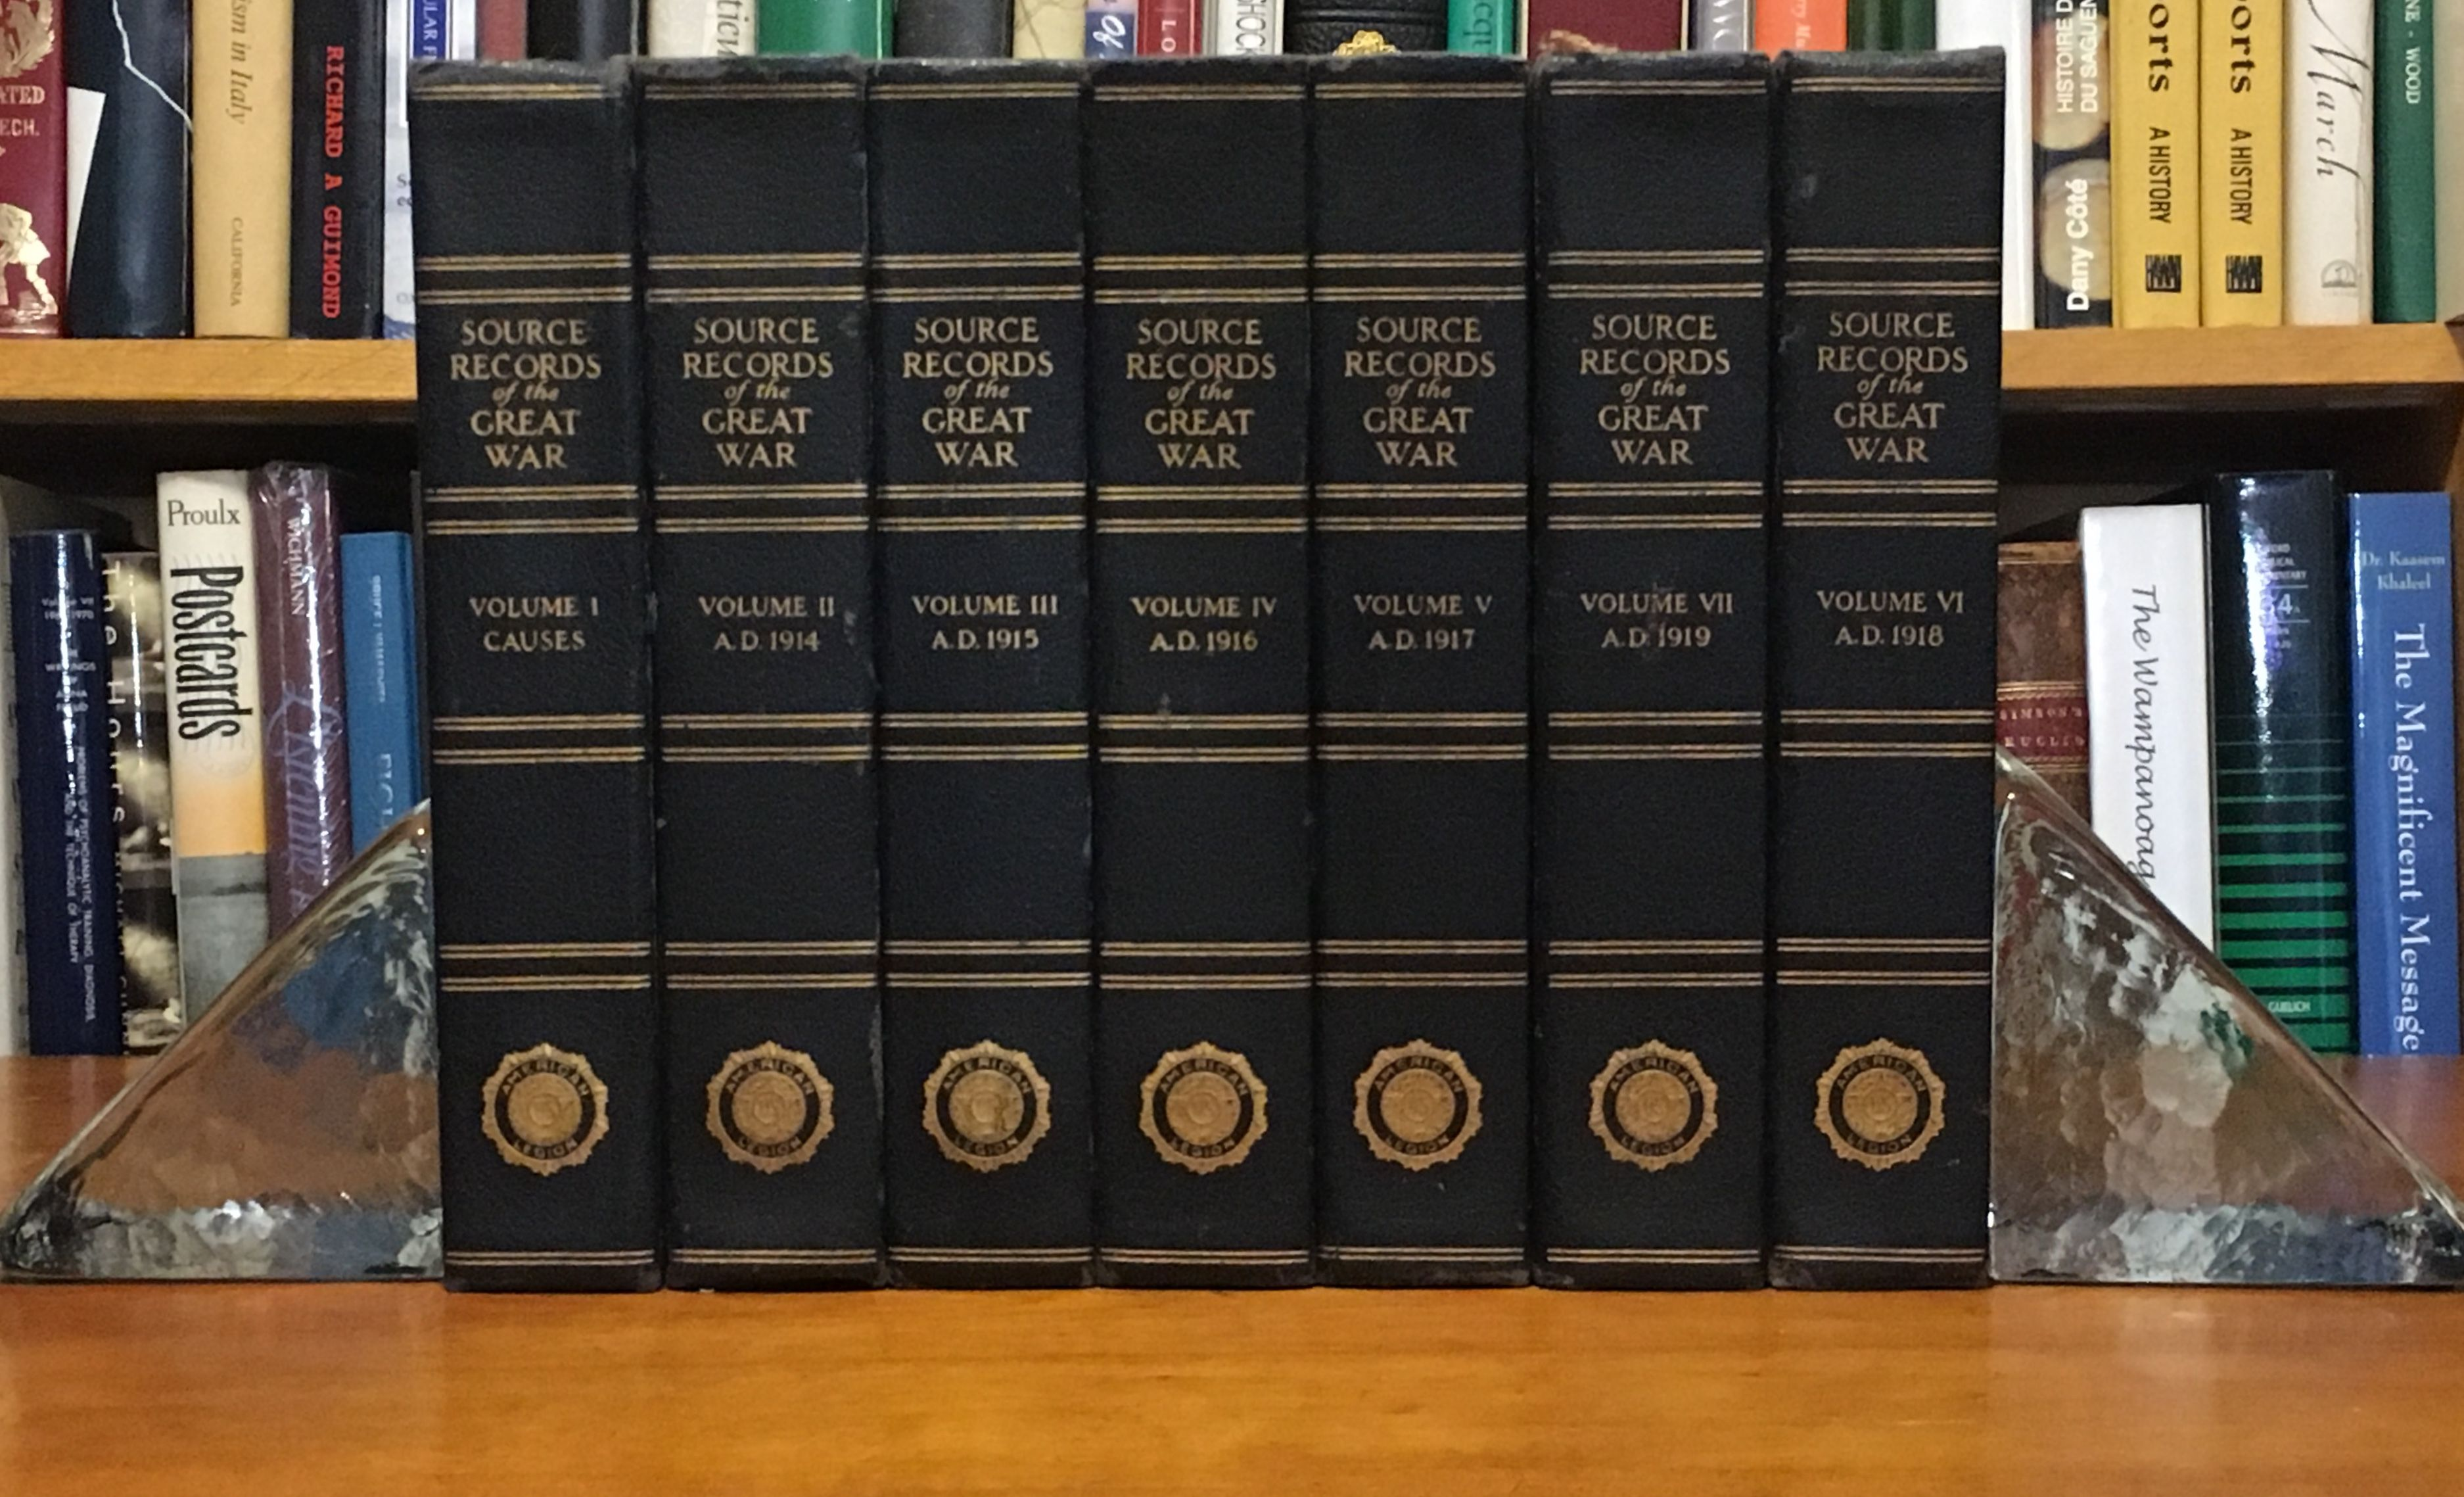 Source Records of The Great War (7 Volume Set)